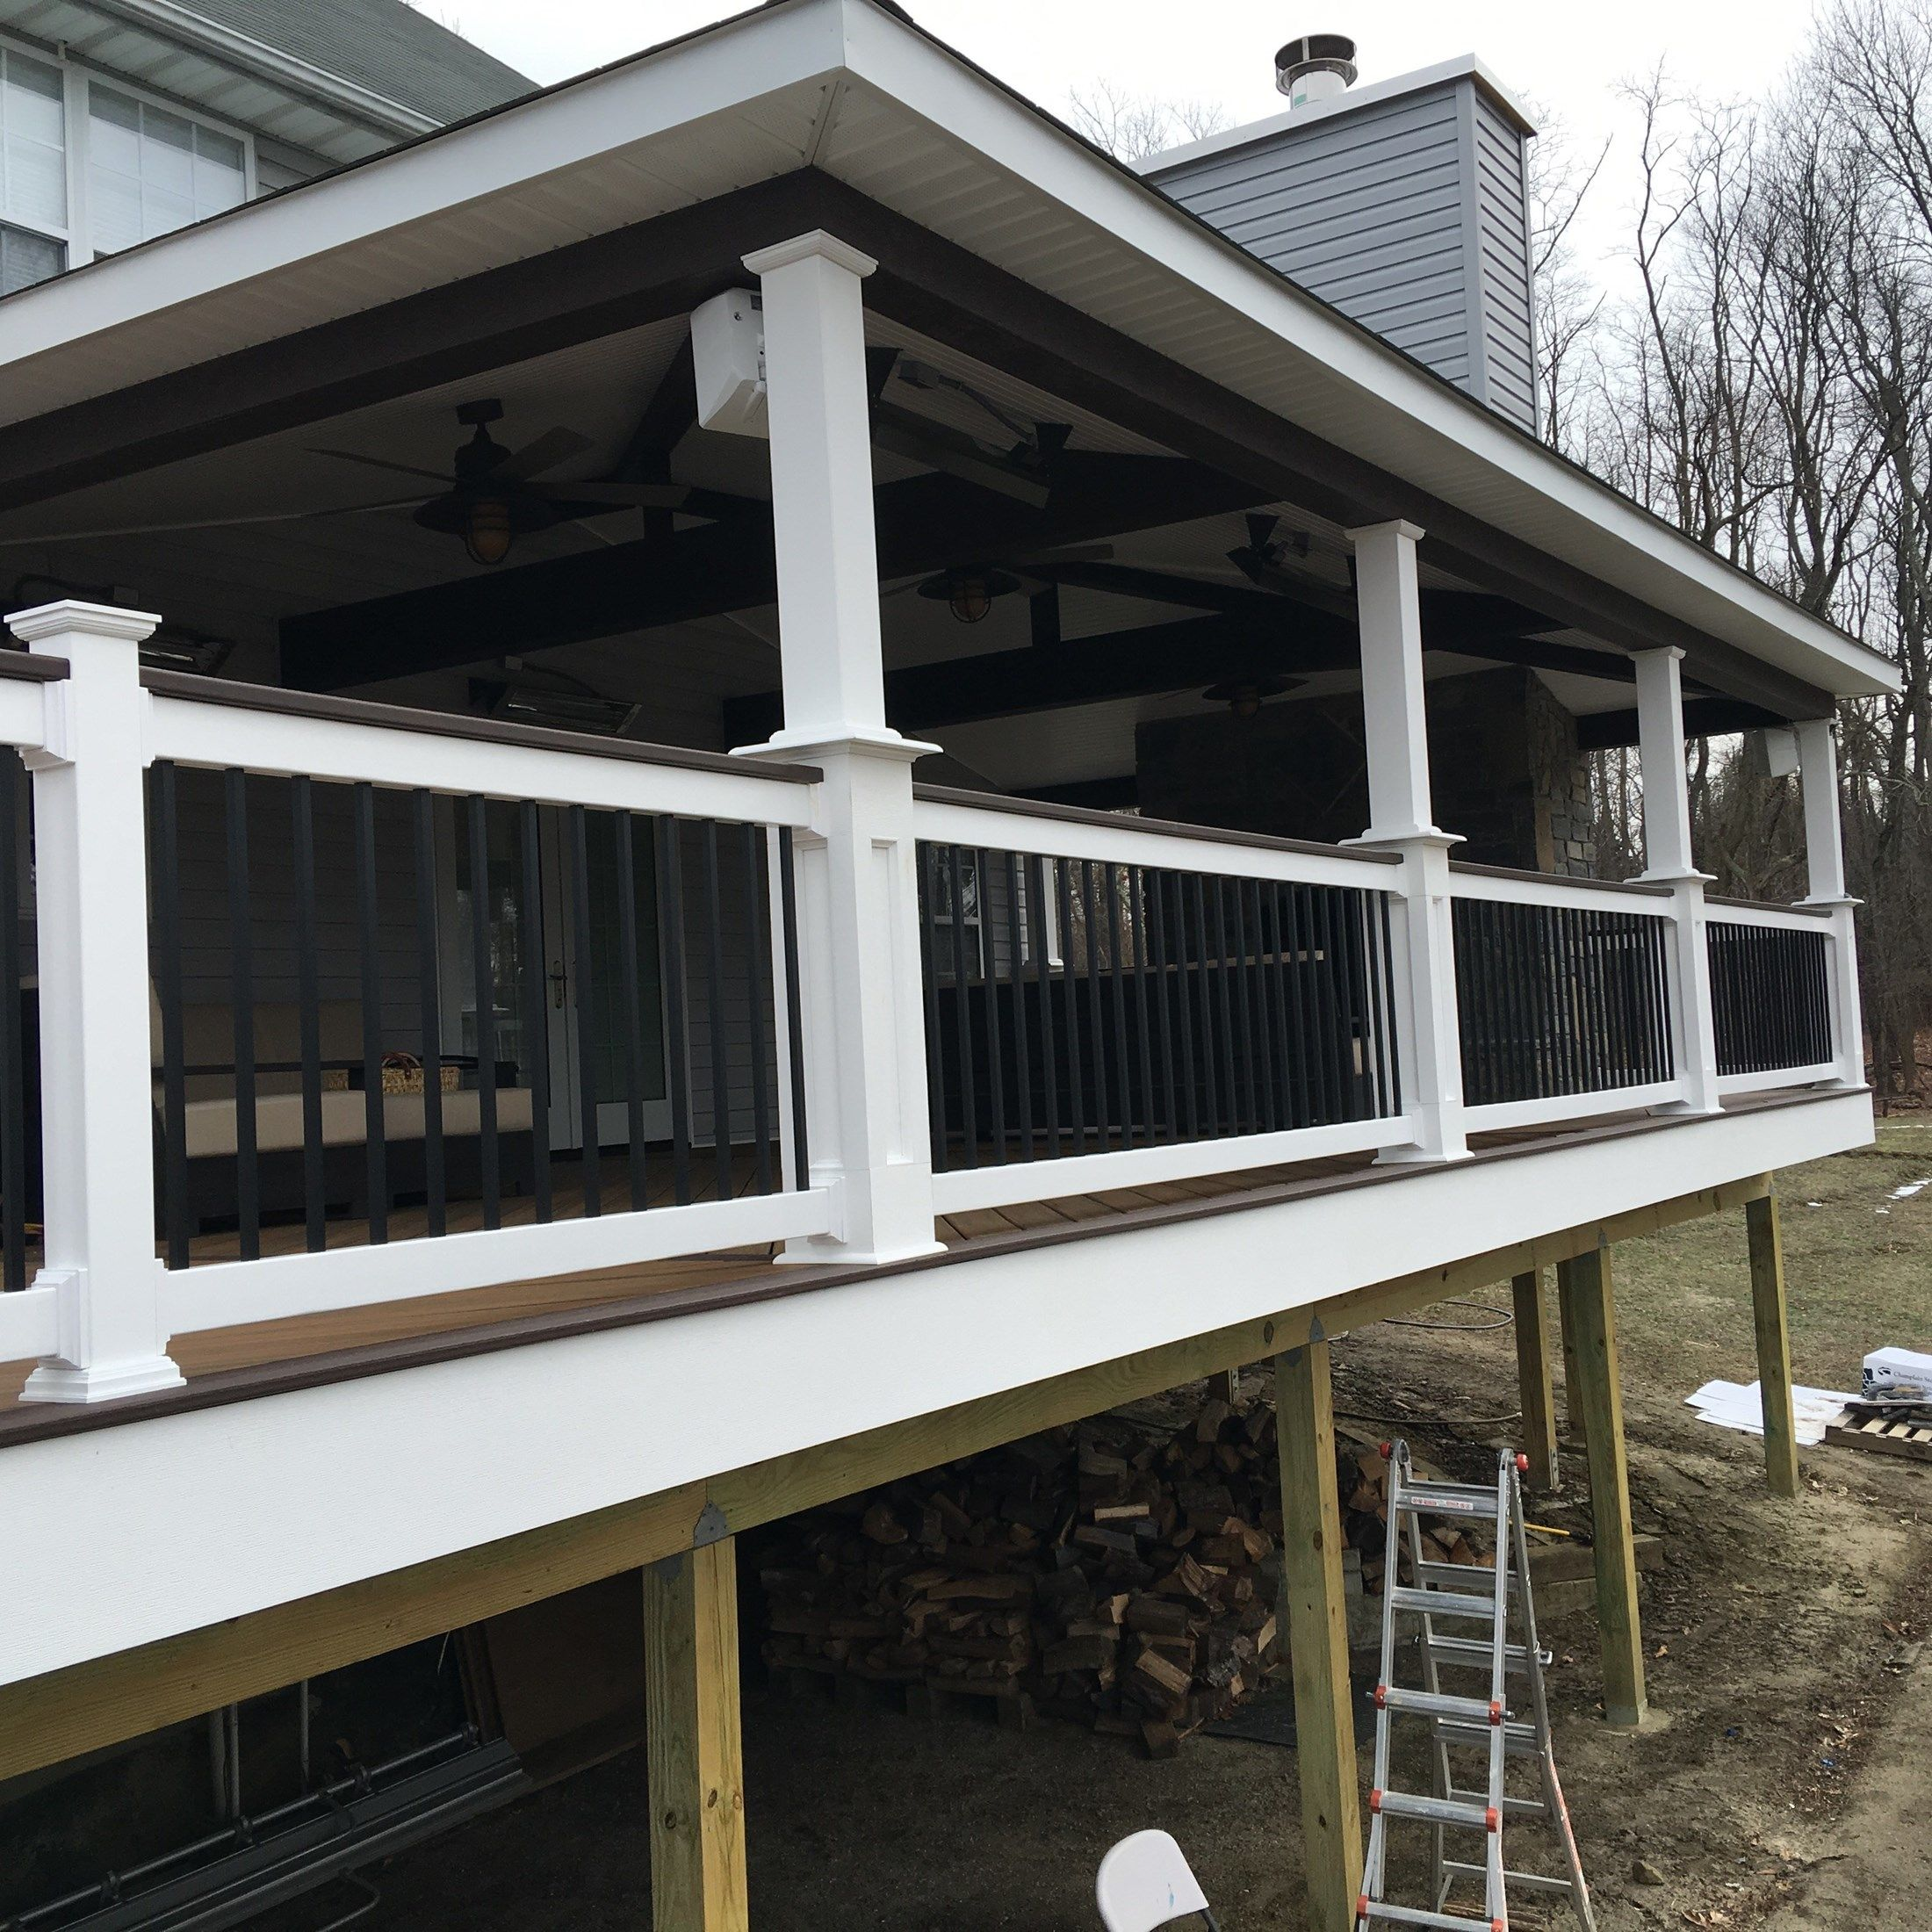 Custom Roofed deck with Fireplace in Millstone nj - Picture 6771